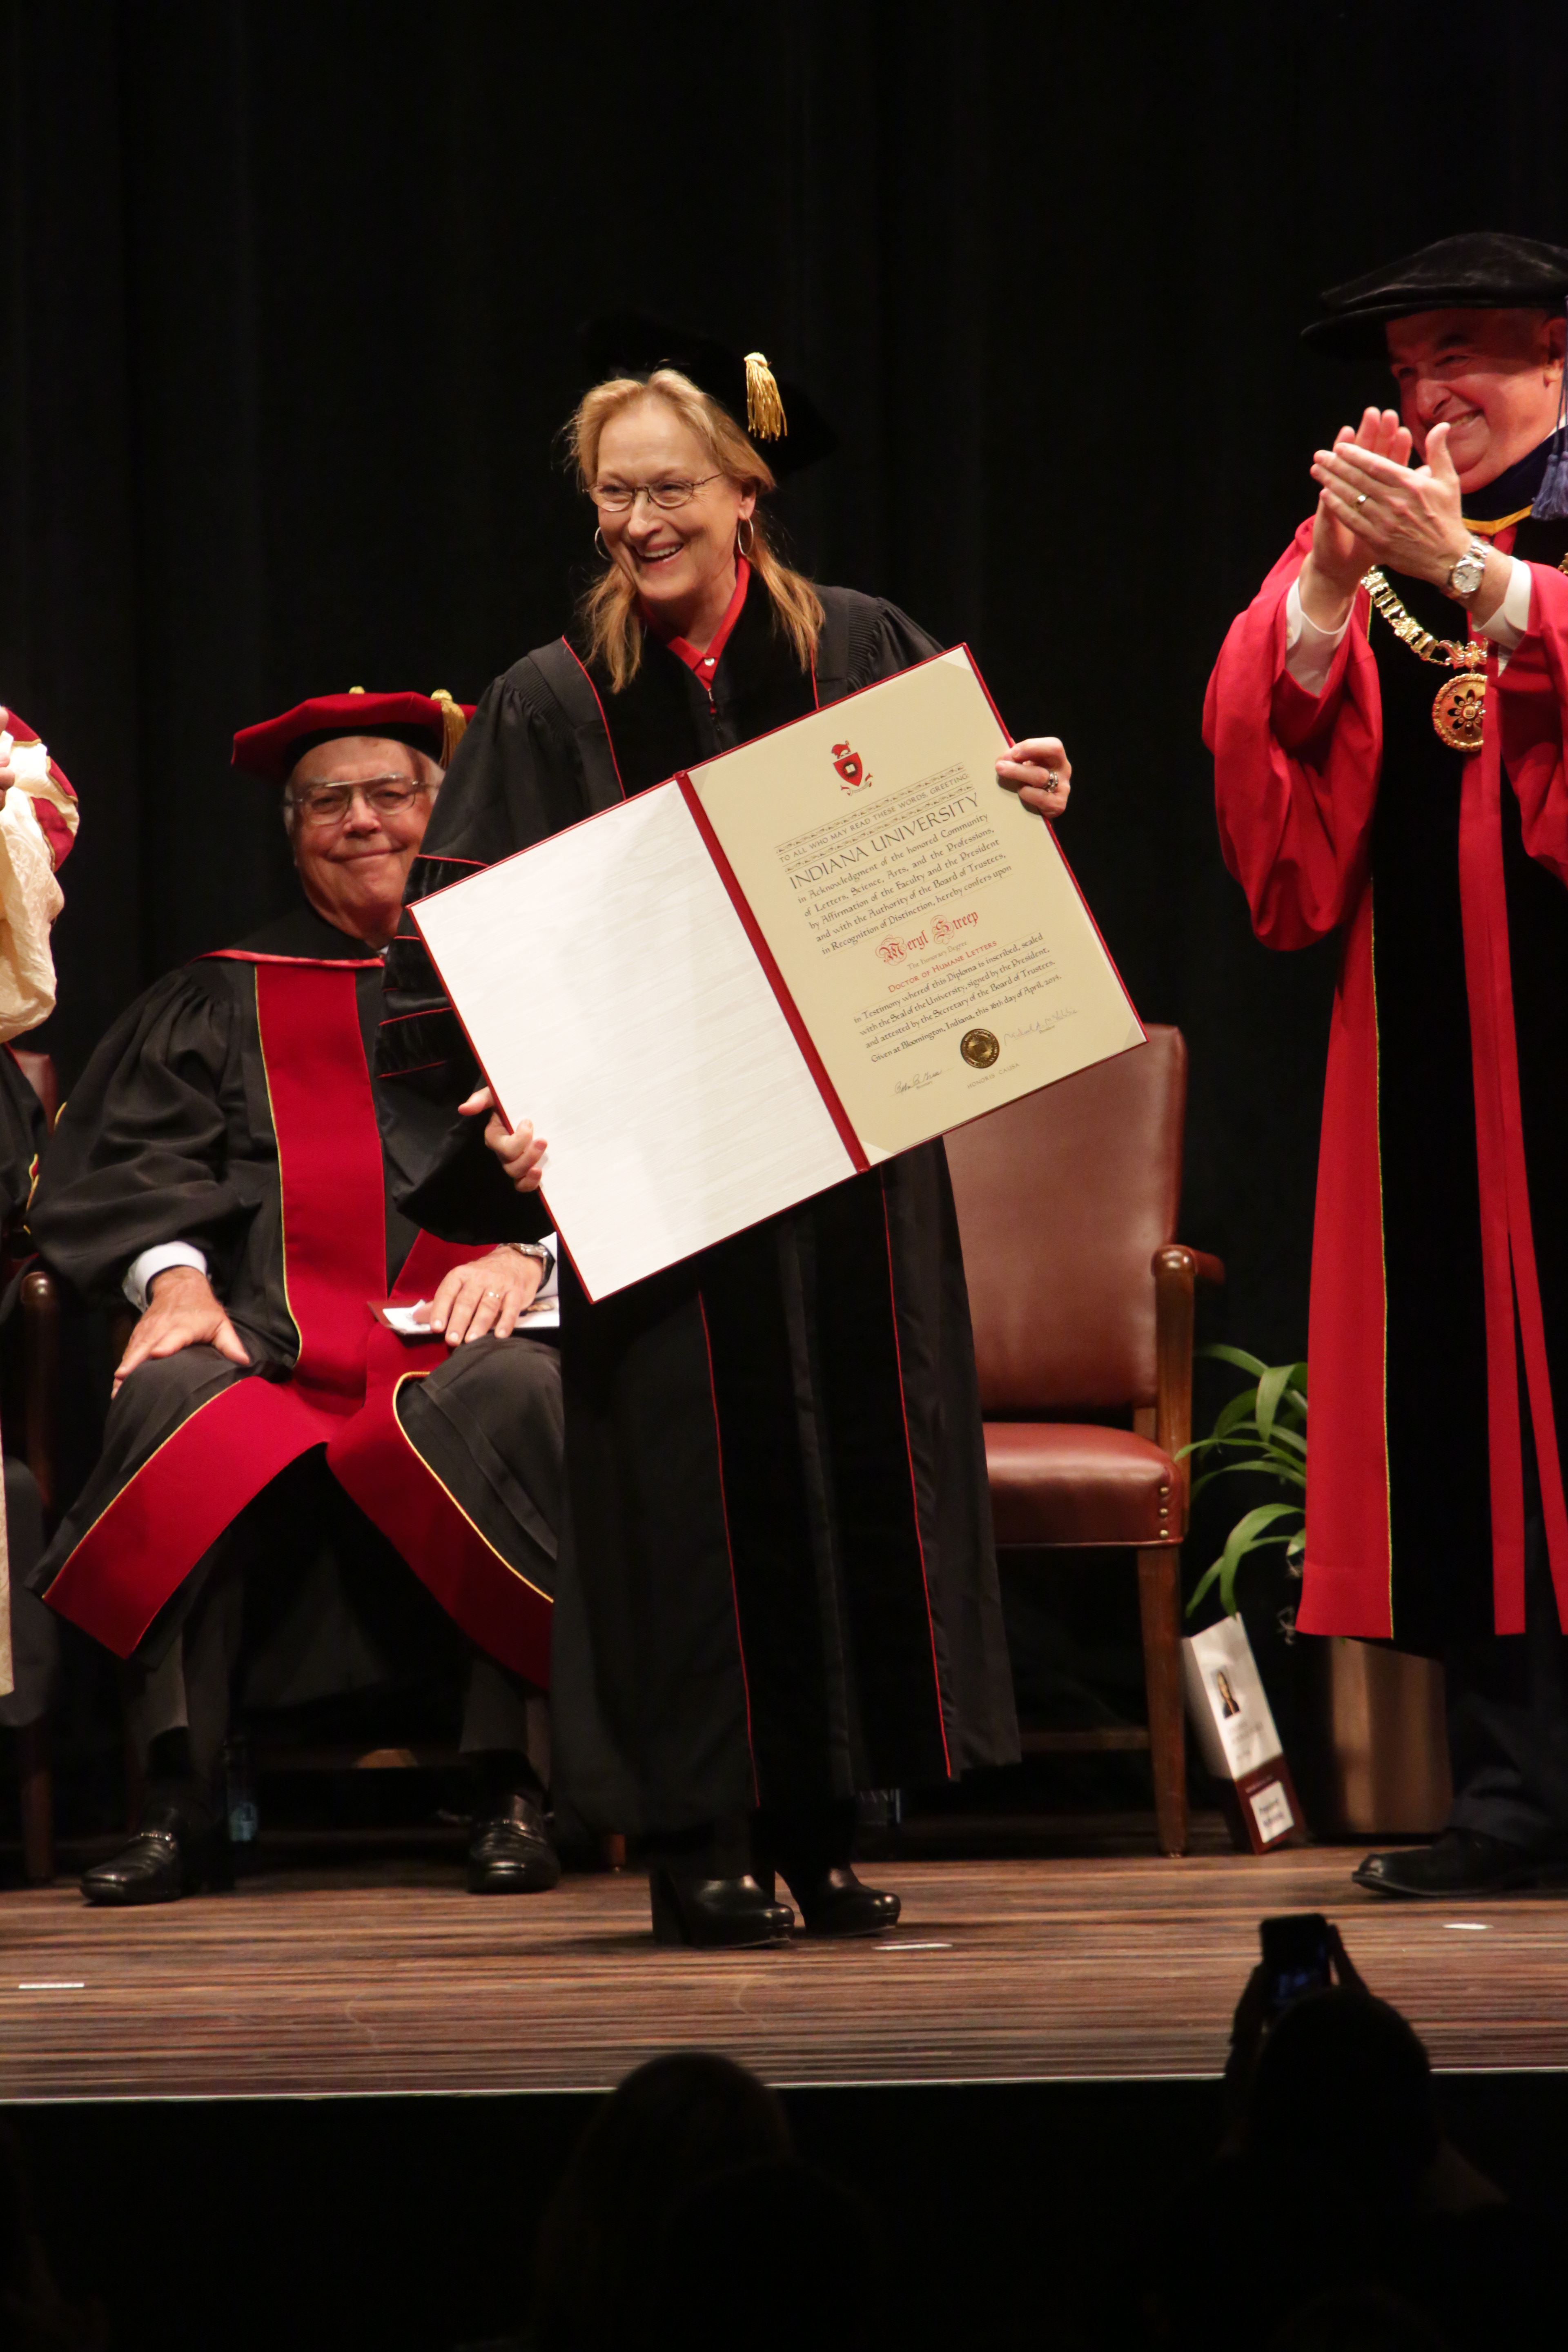 Meryl Streep receives a Conferral Honorary Degree from Indiana University on April 16, 2014 in Bloomington, Indiana.